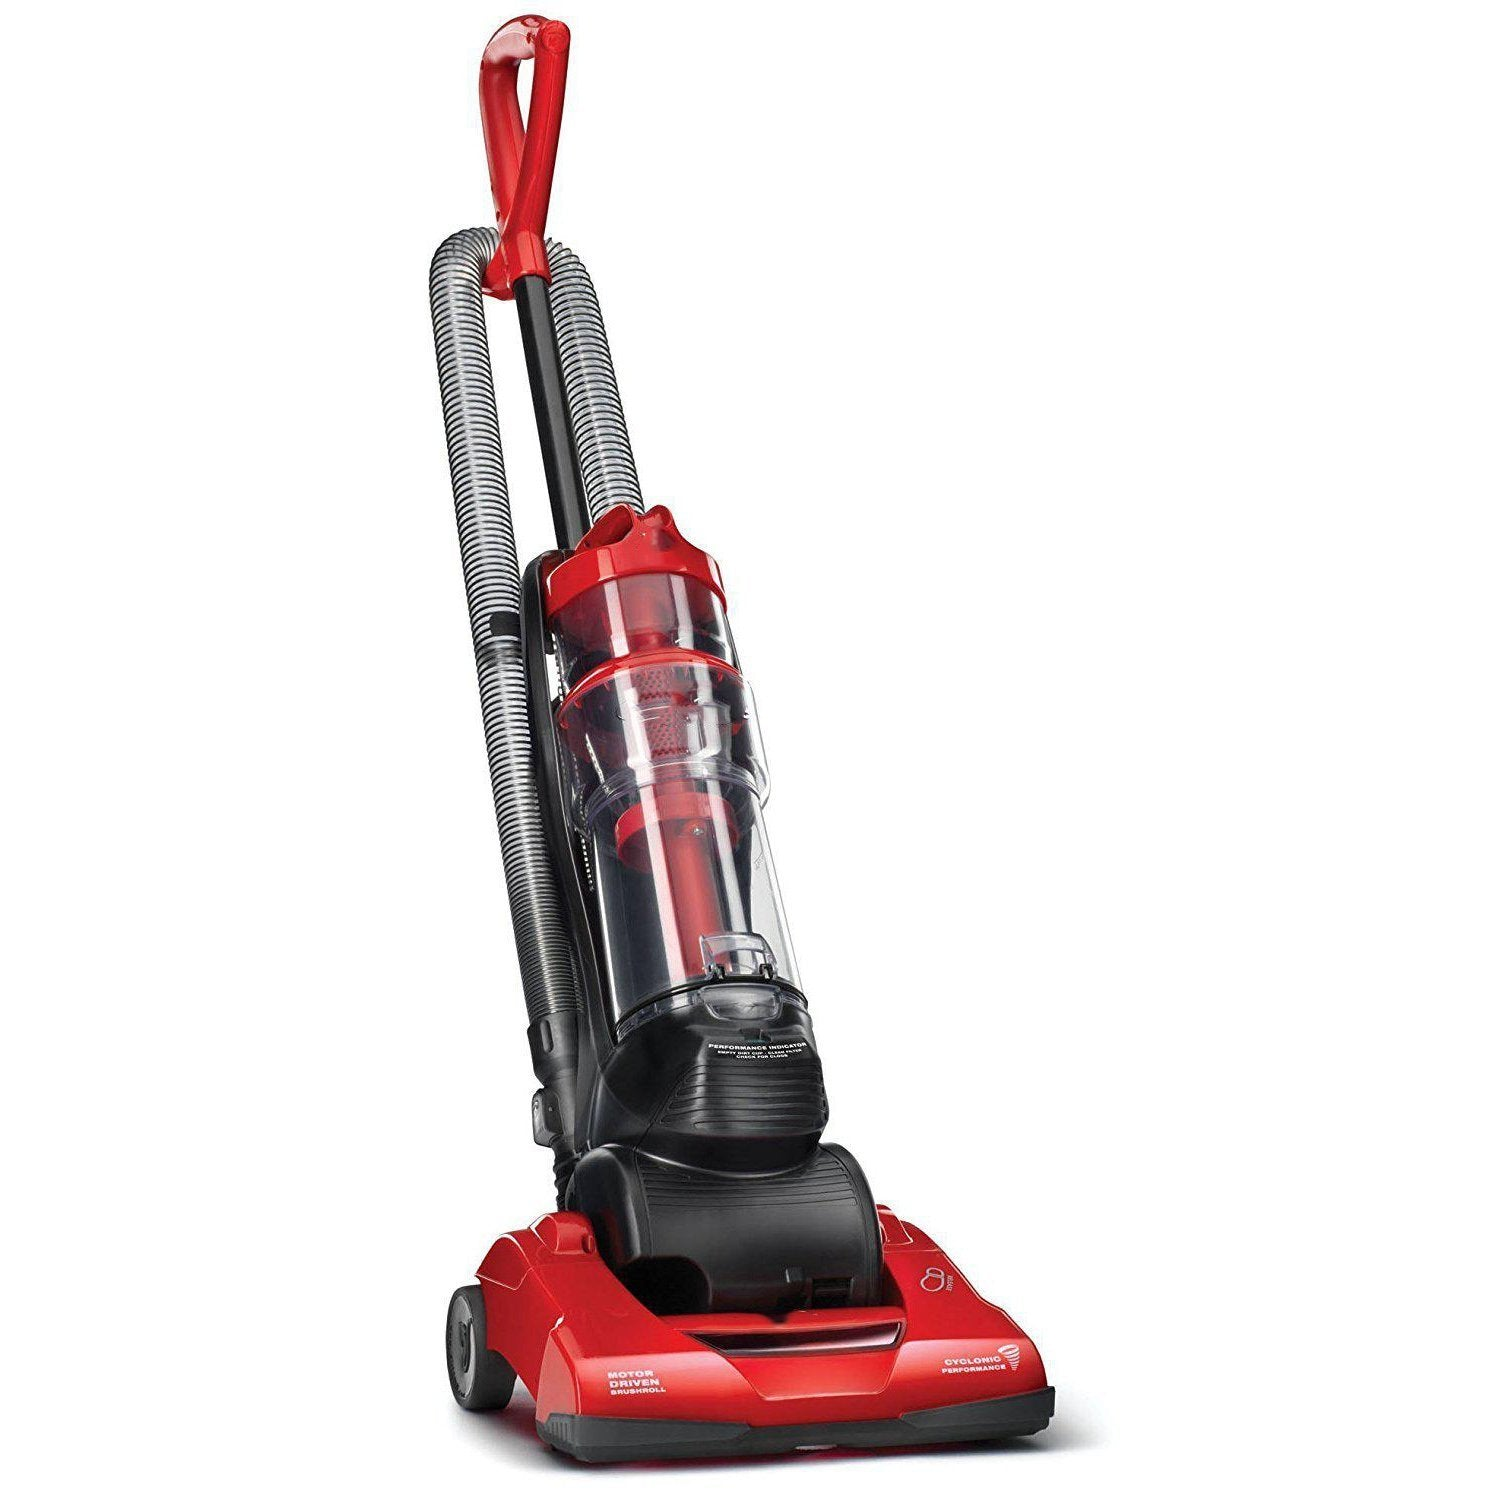 Extreme Cyclonic Quick Bagless Upright Vacuum, Corded